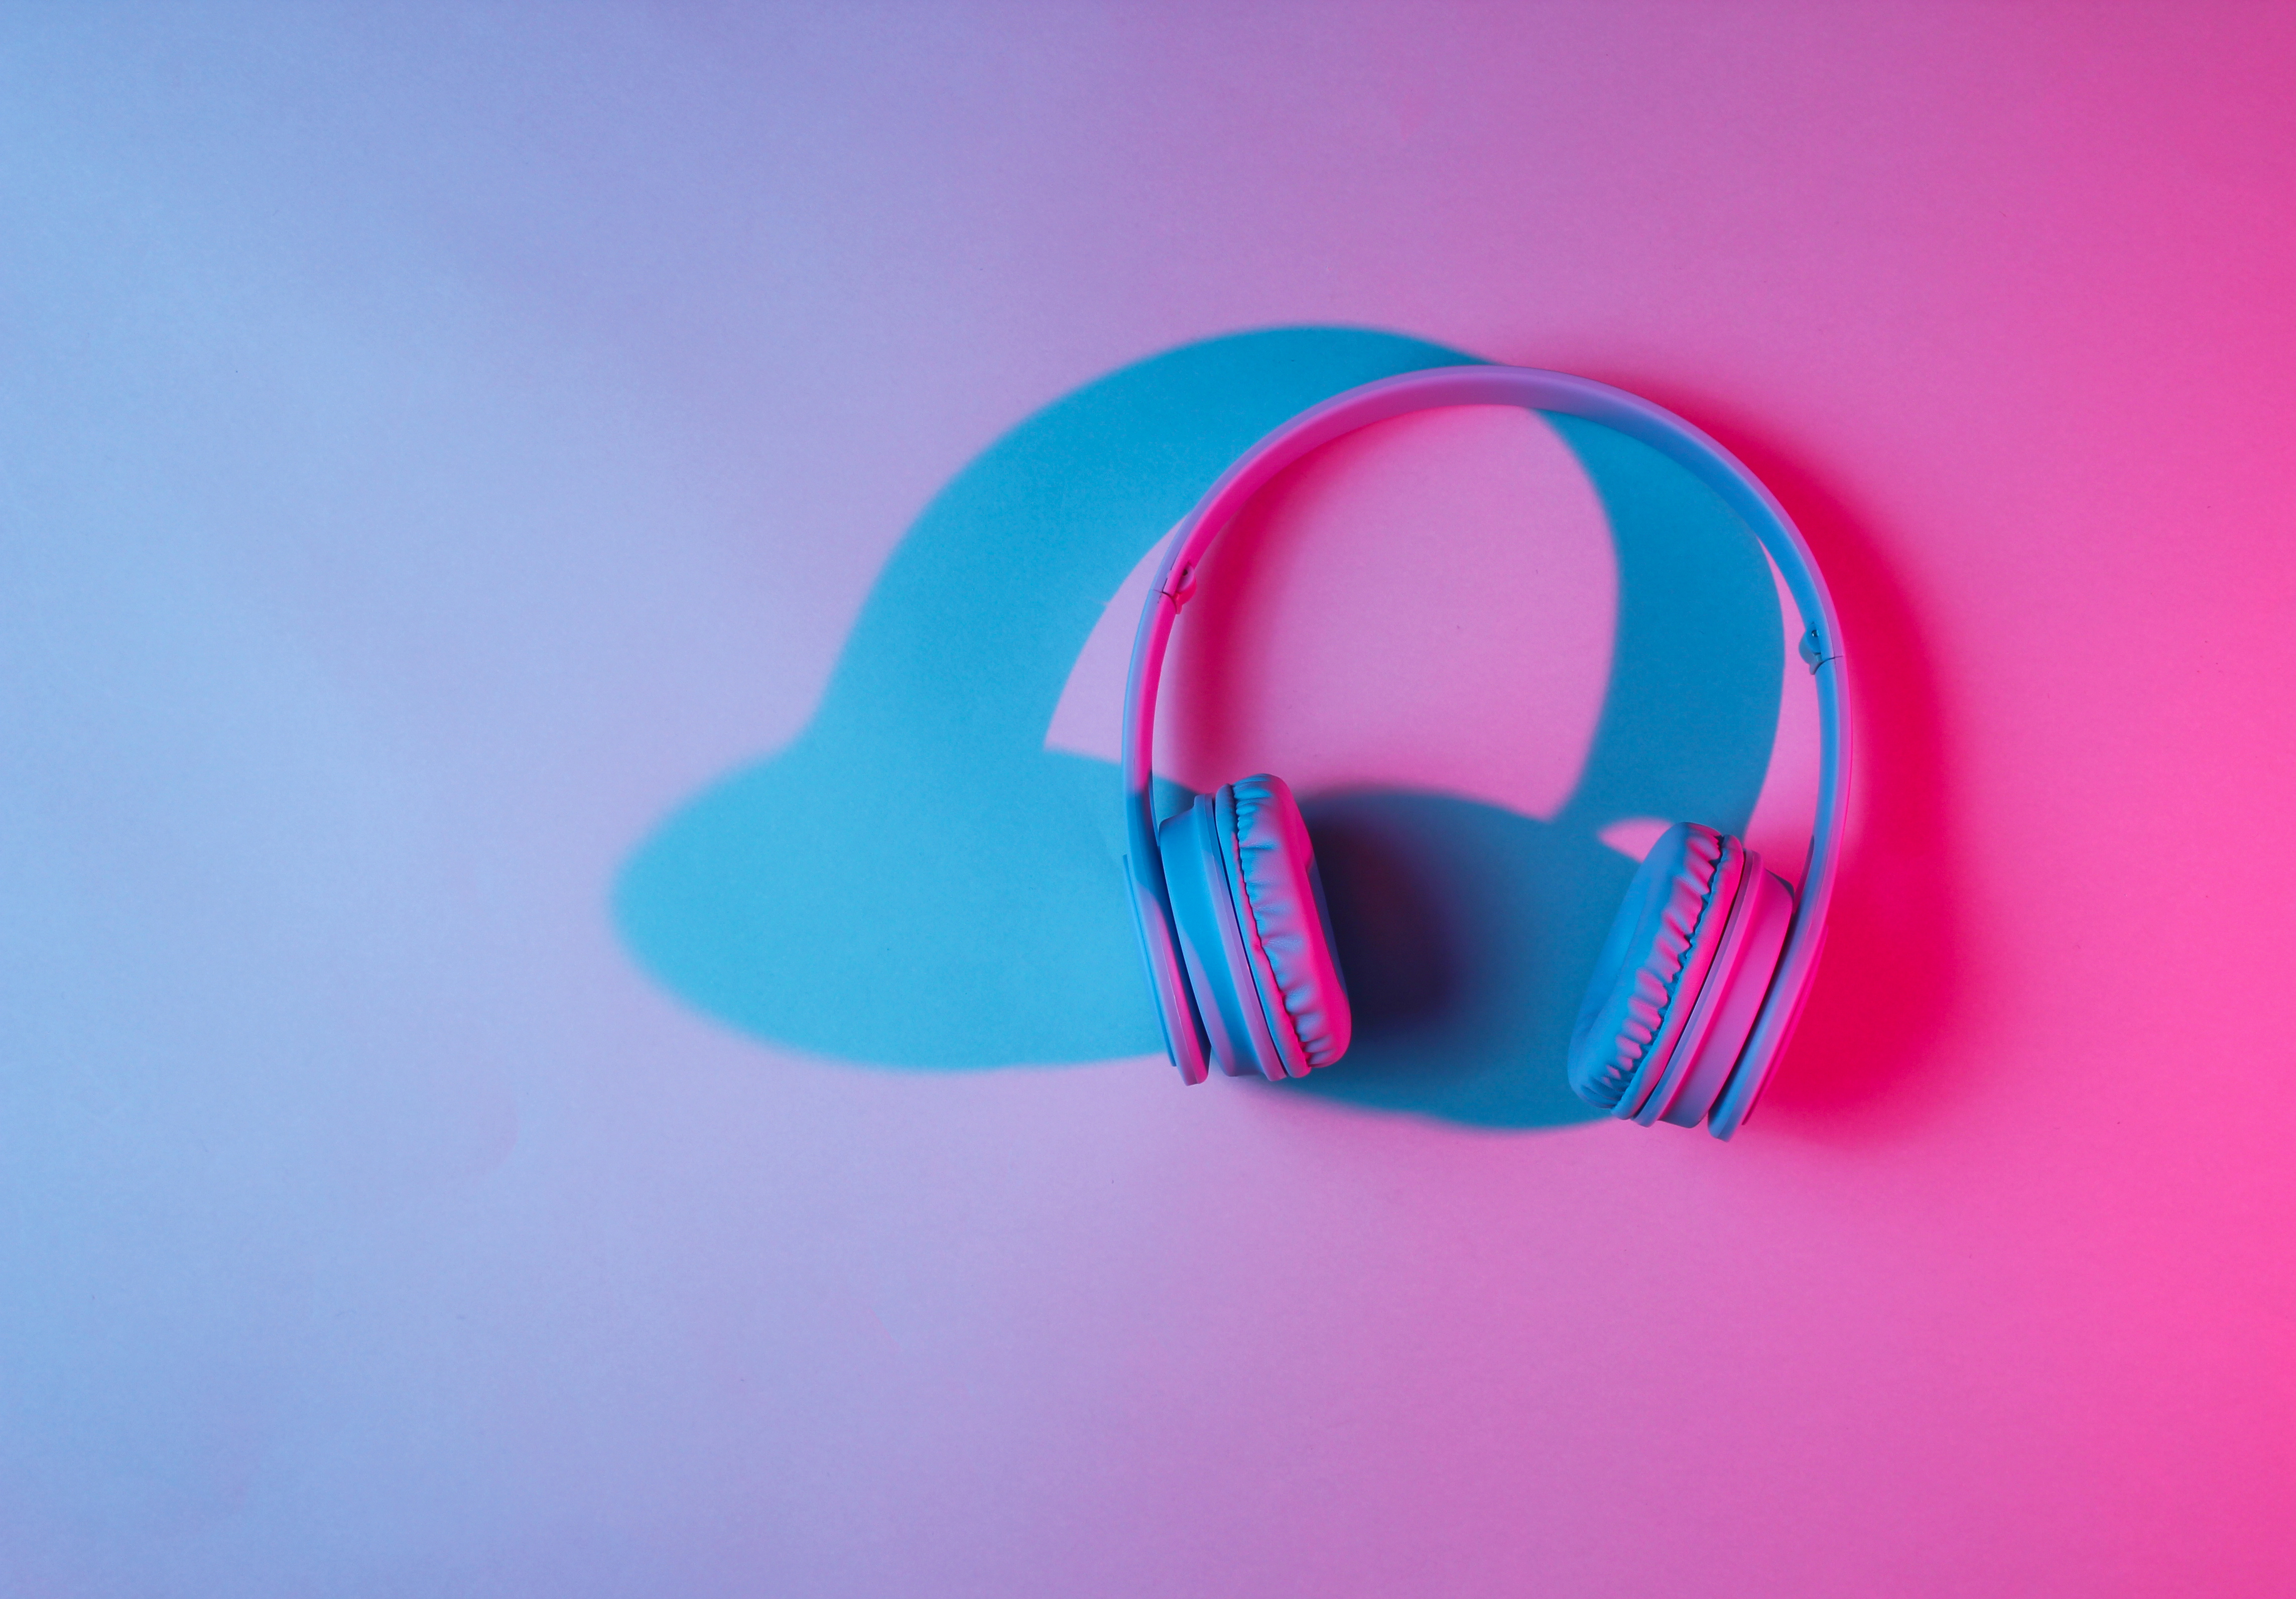 Blue, purple, and pink lights blending together and creating a shadow over a pair of white headphones